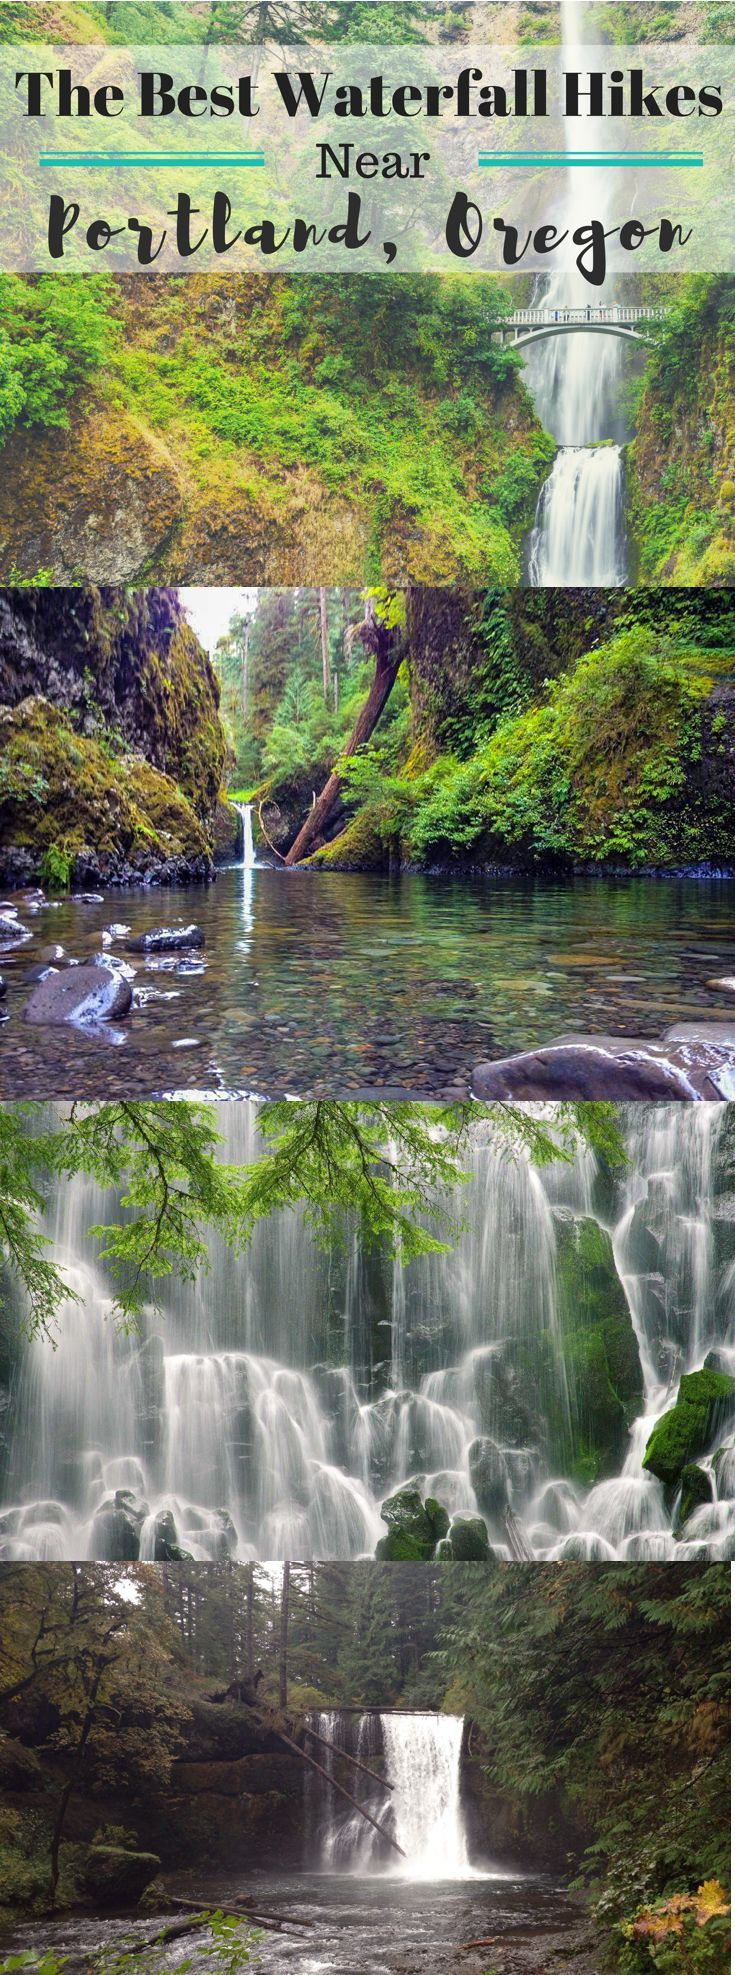 The Best Waterfall Hikes Near Portland, Oregon More